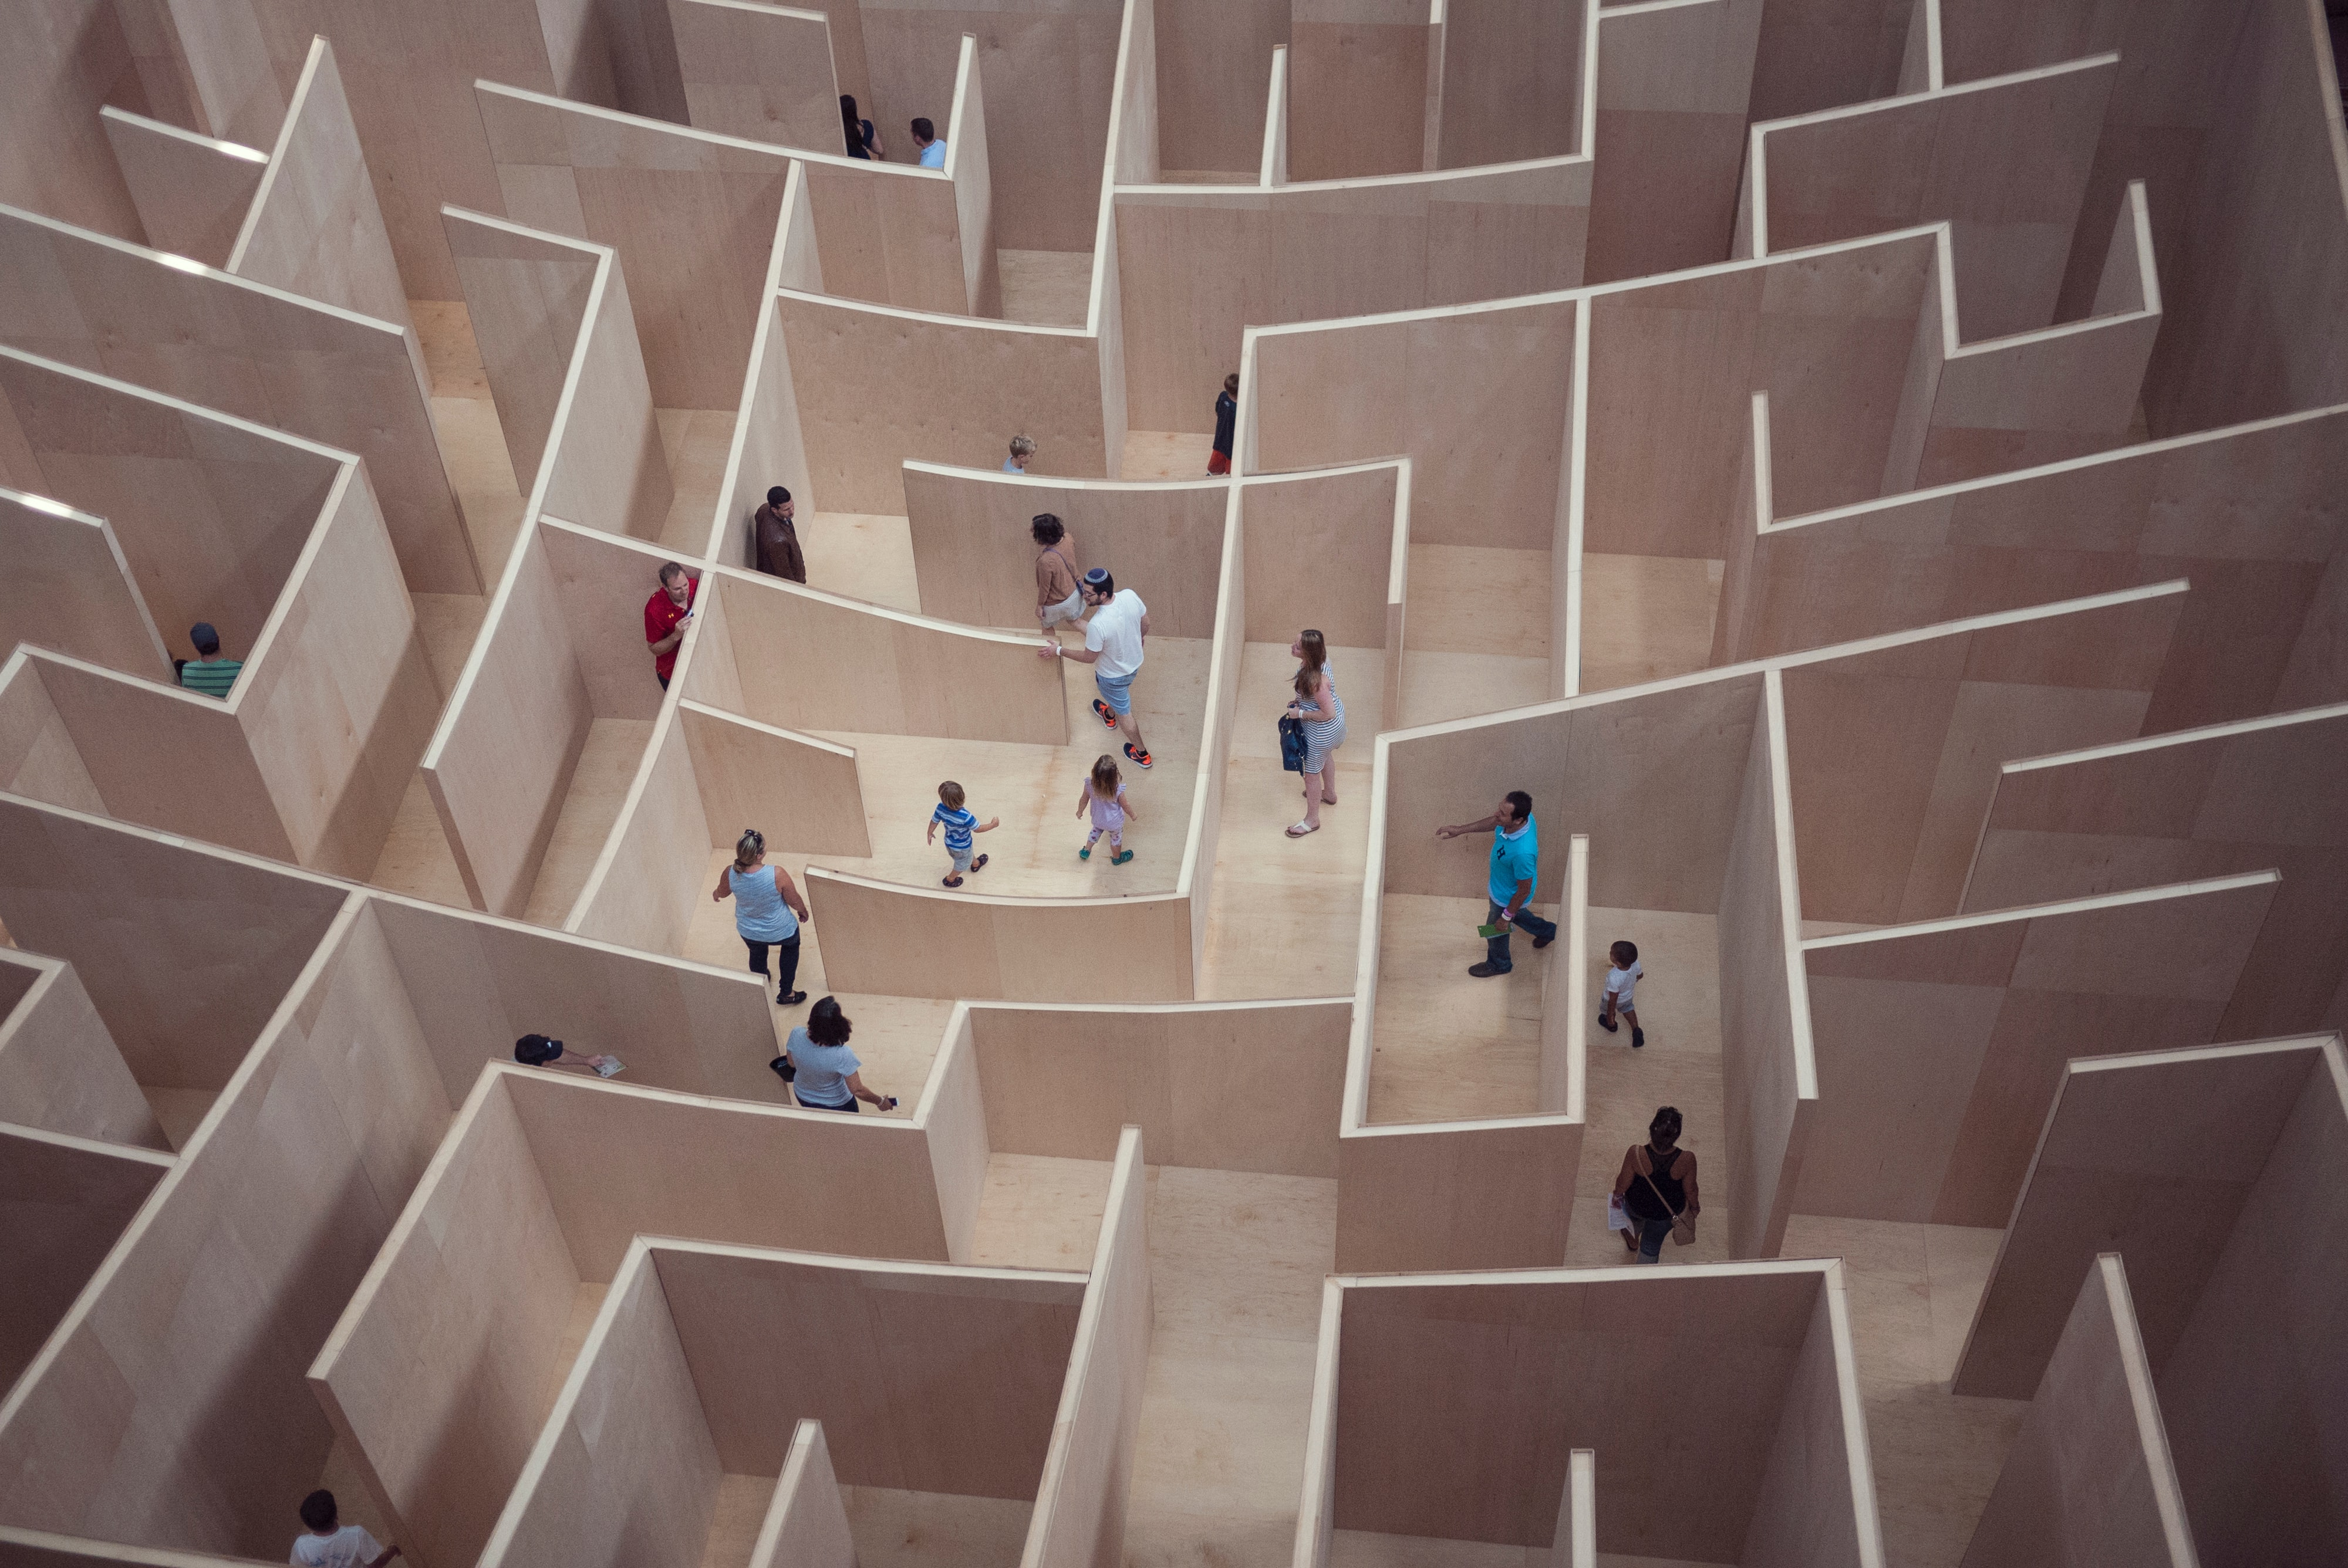 Overhead view of a wooden maze with people walking through it